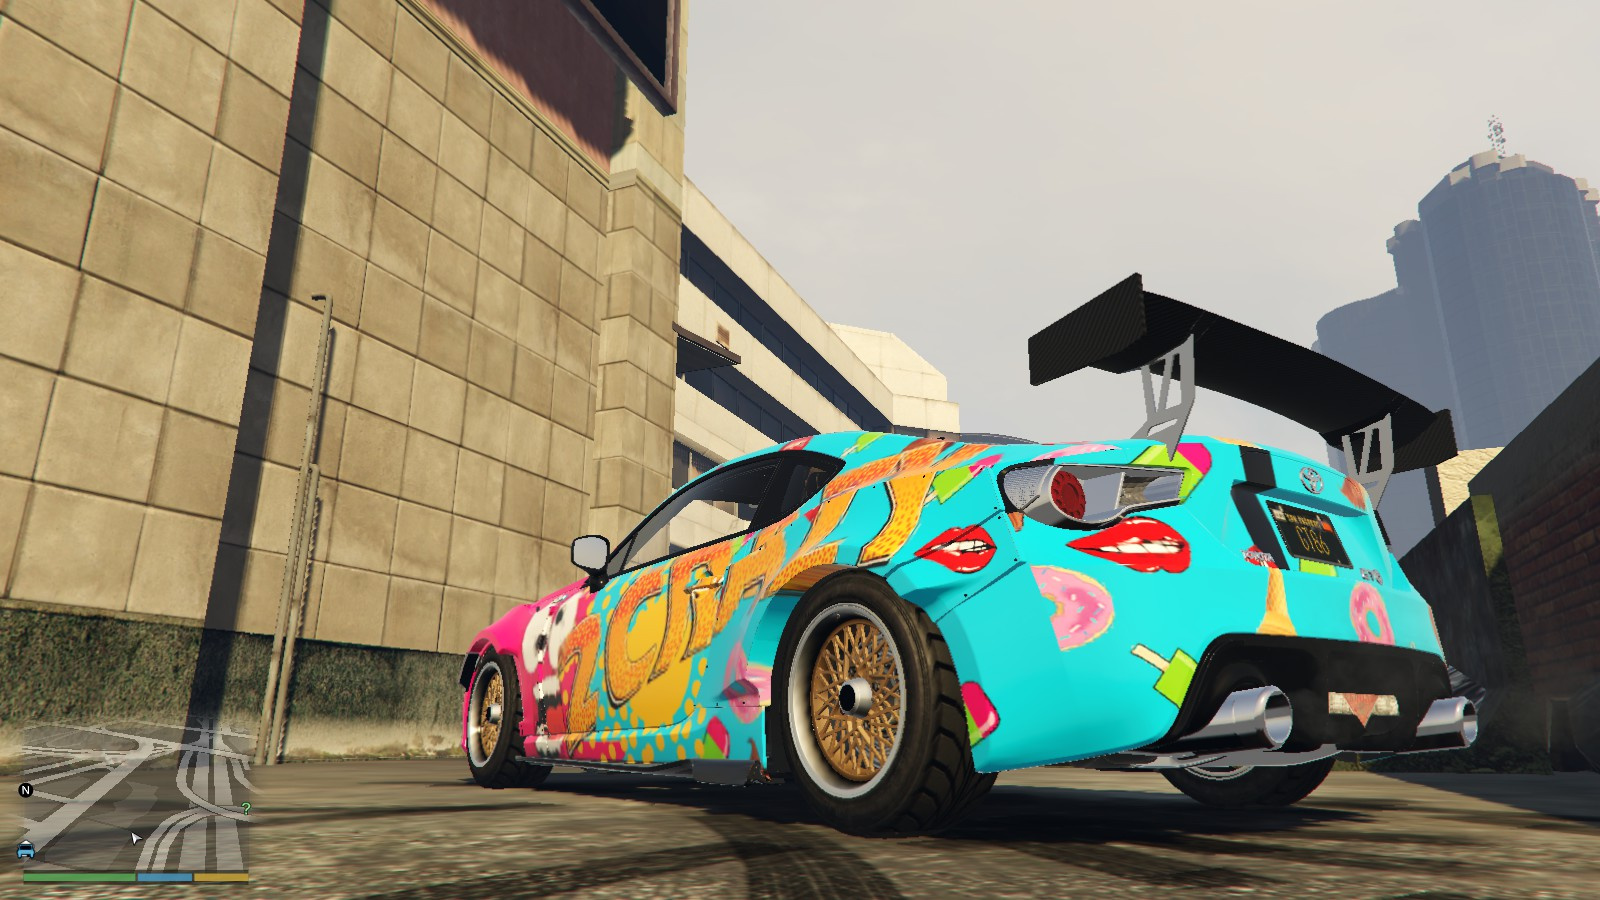 Toyota 86 Livery >> Toyota GT86 livery - 2 Crazy Design (inspired by JP Performance) Paintjob - GTA5-Mods.com